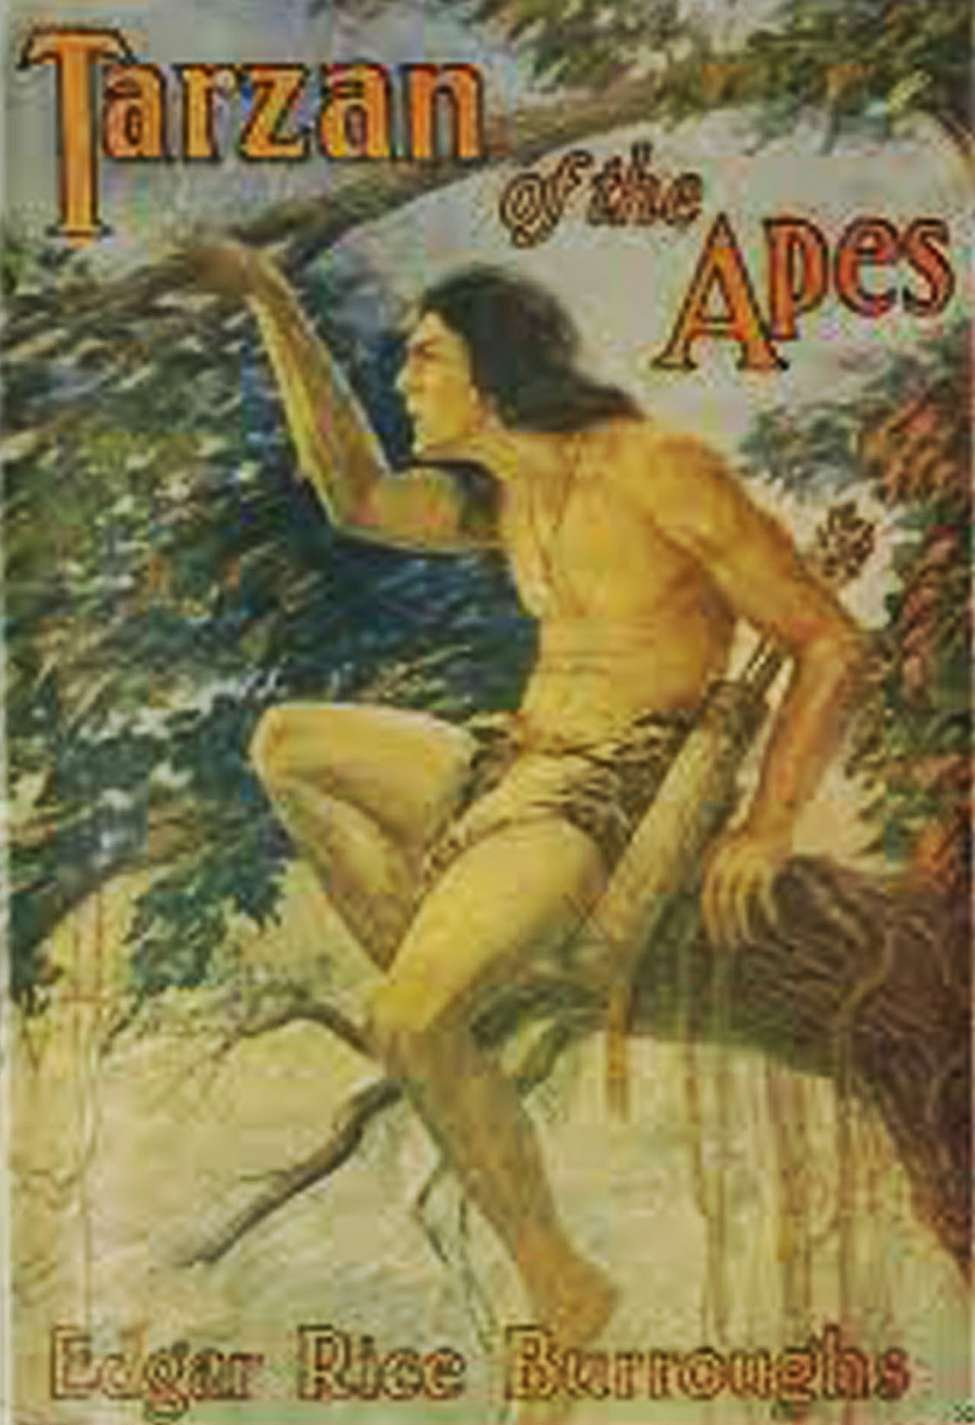 Comic Book Cover For Tarzan of the Apes (1918)